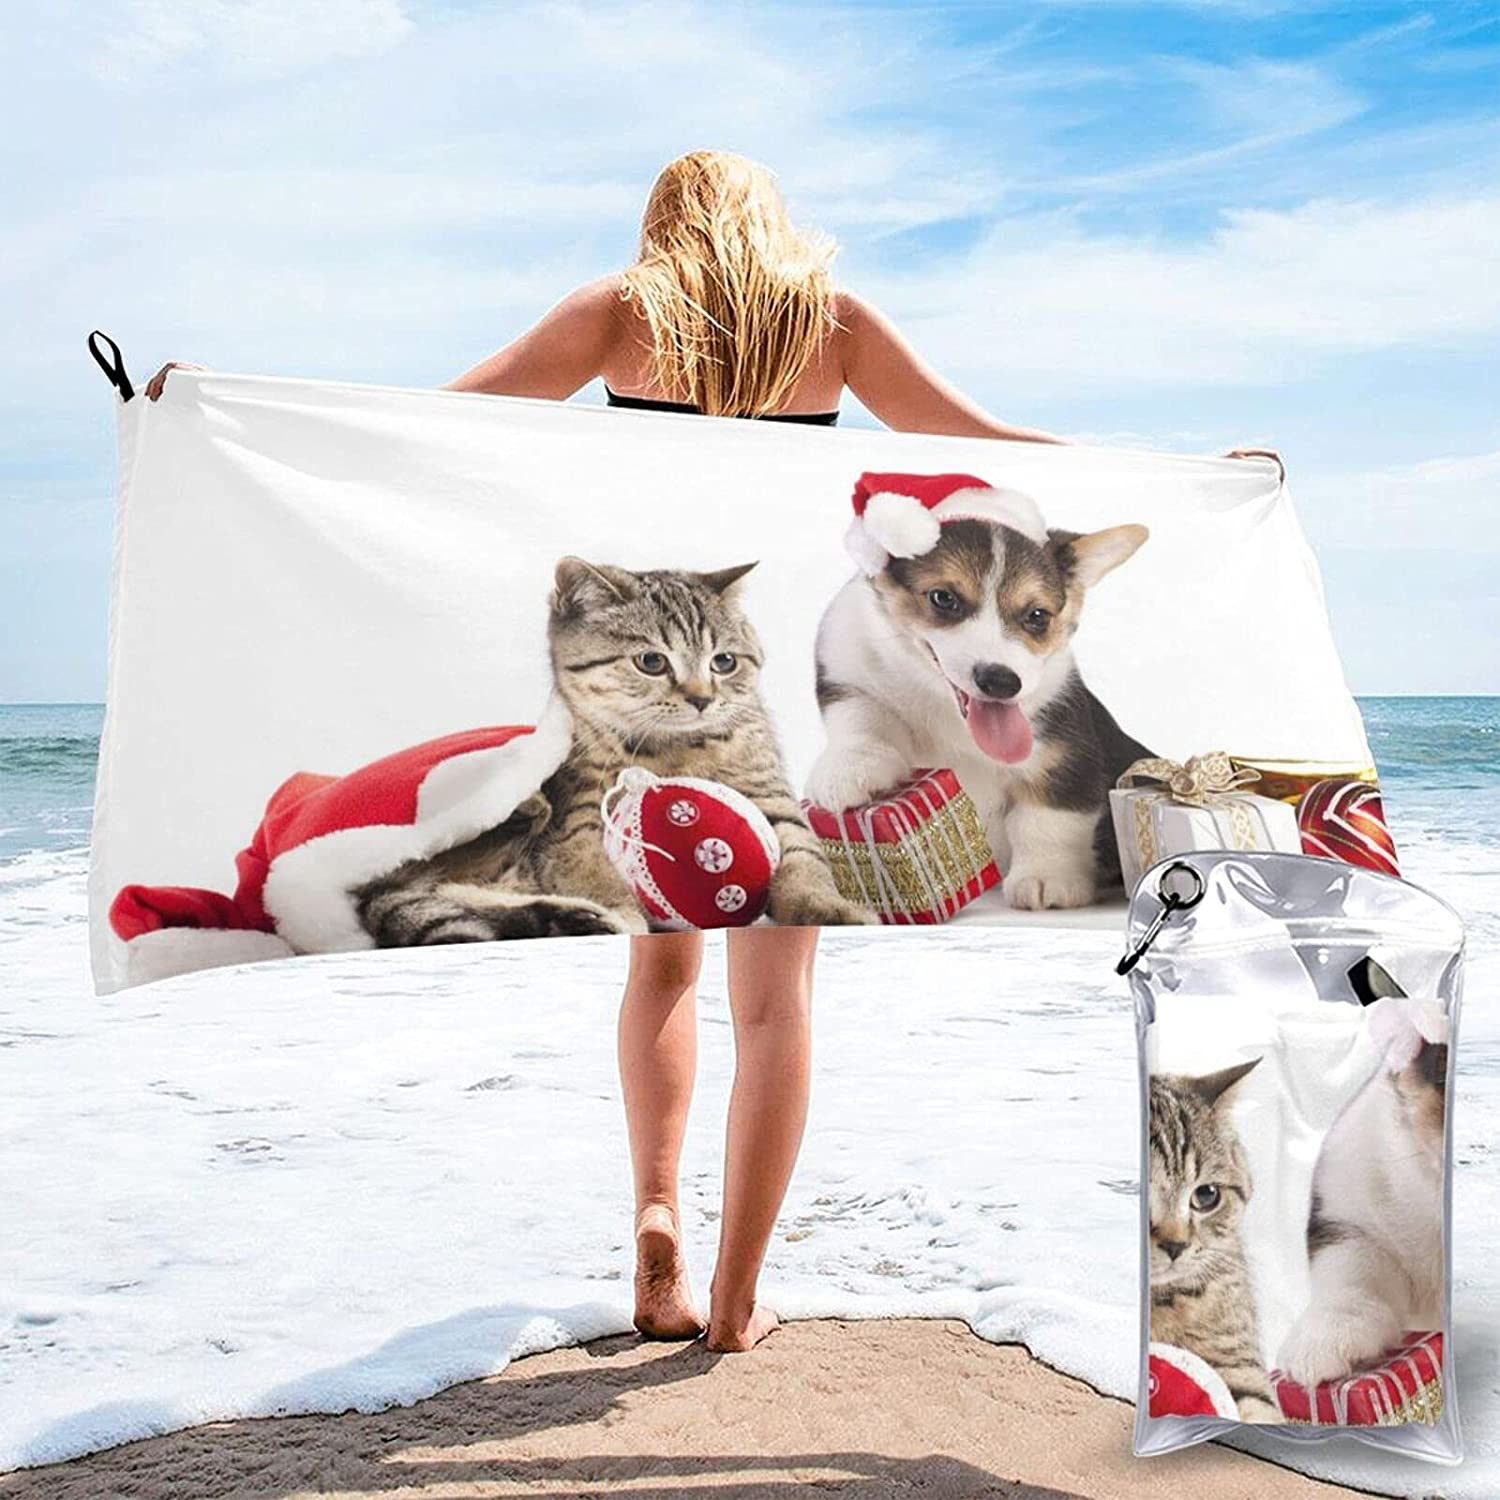 Mescchsk Dog and Cat Free shipping Print Quick Dry Pack 5527.5 Shipping included Size i 2 Towel